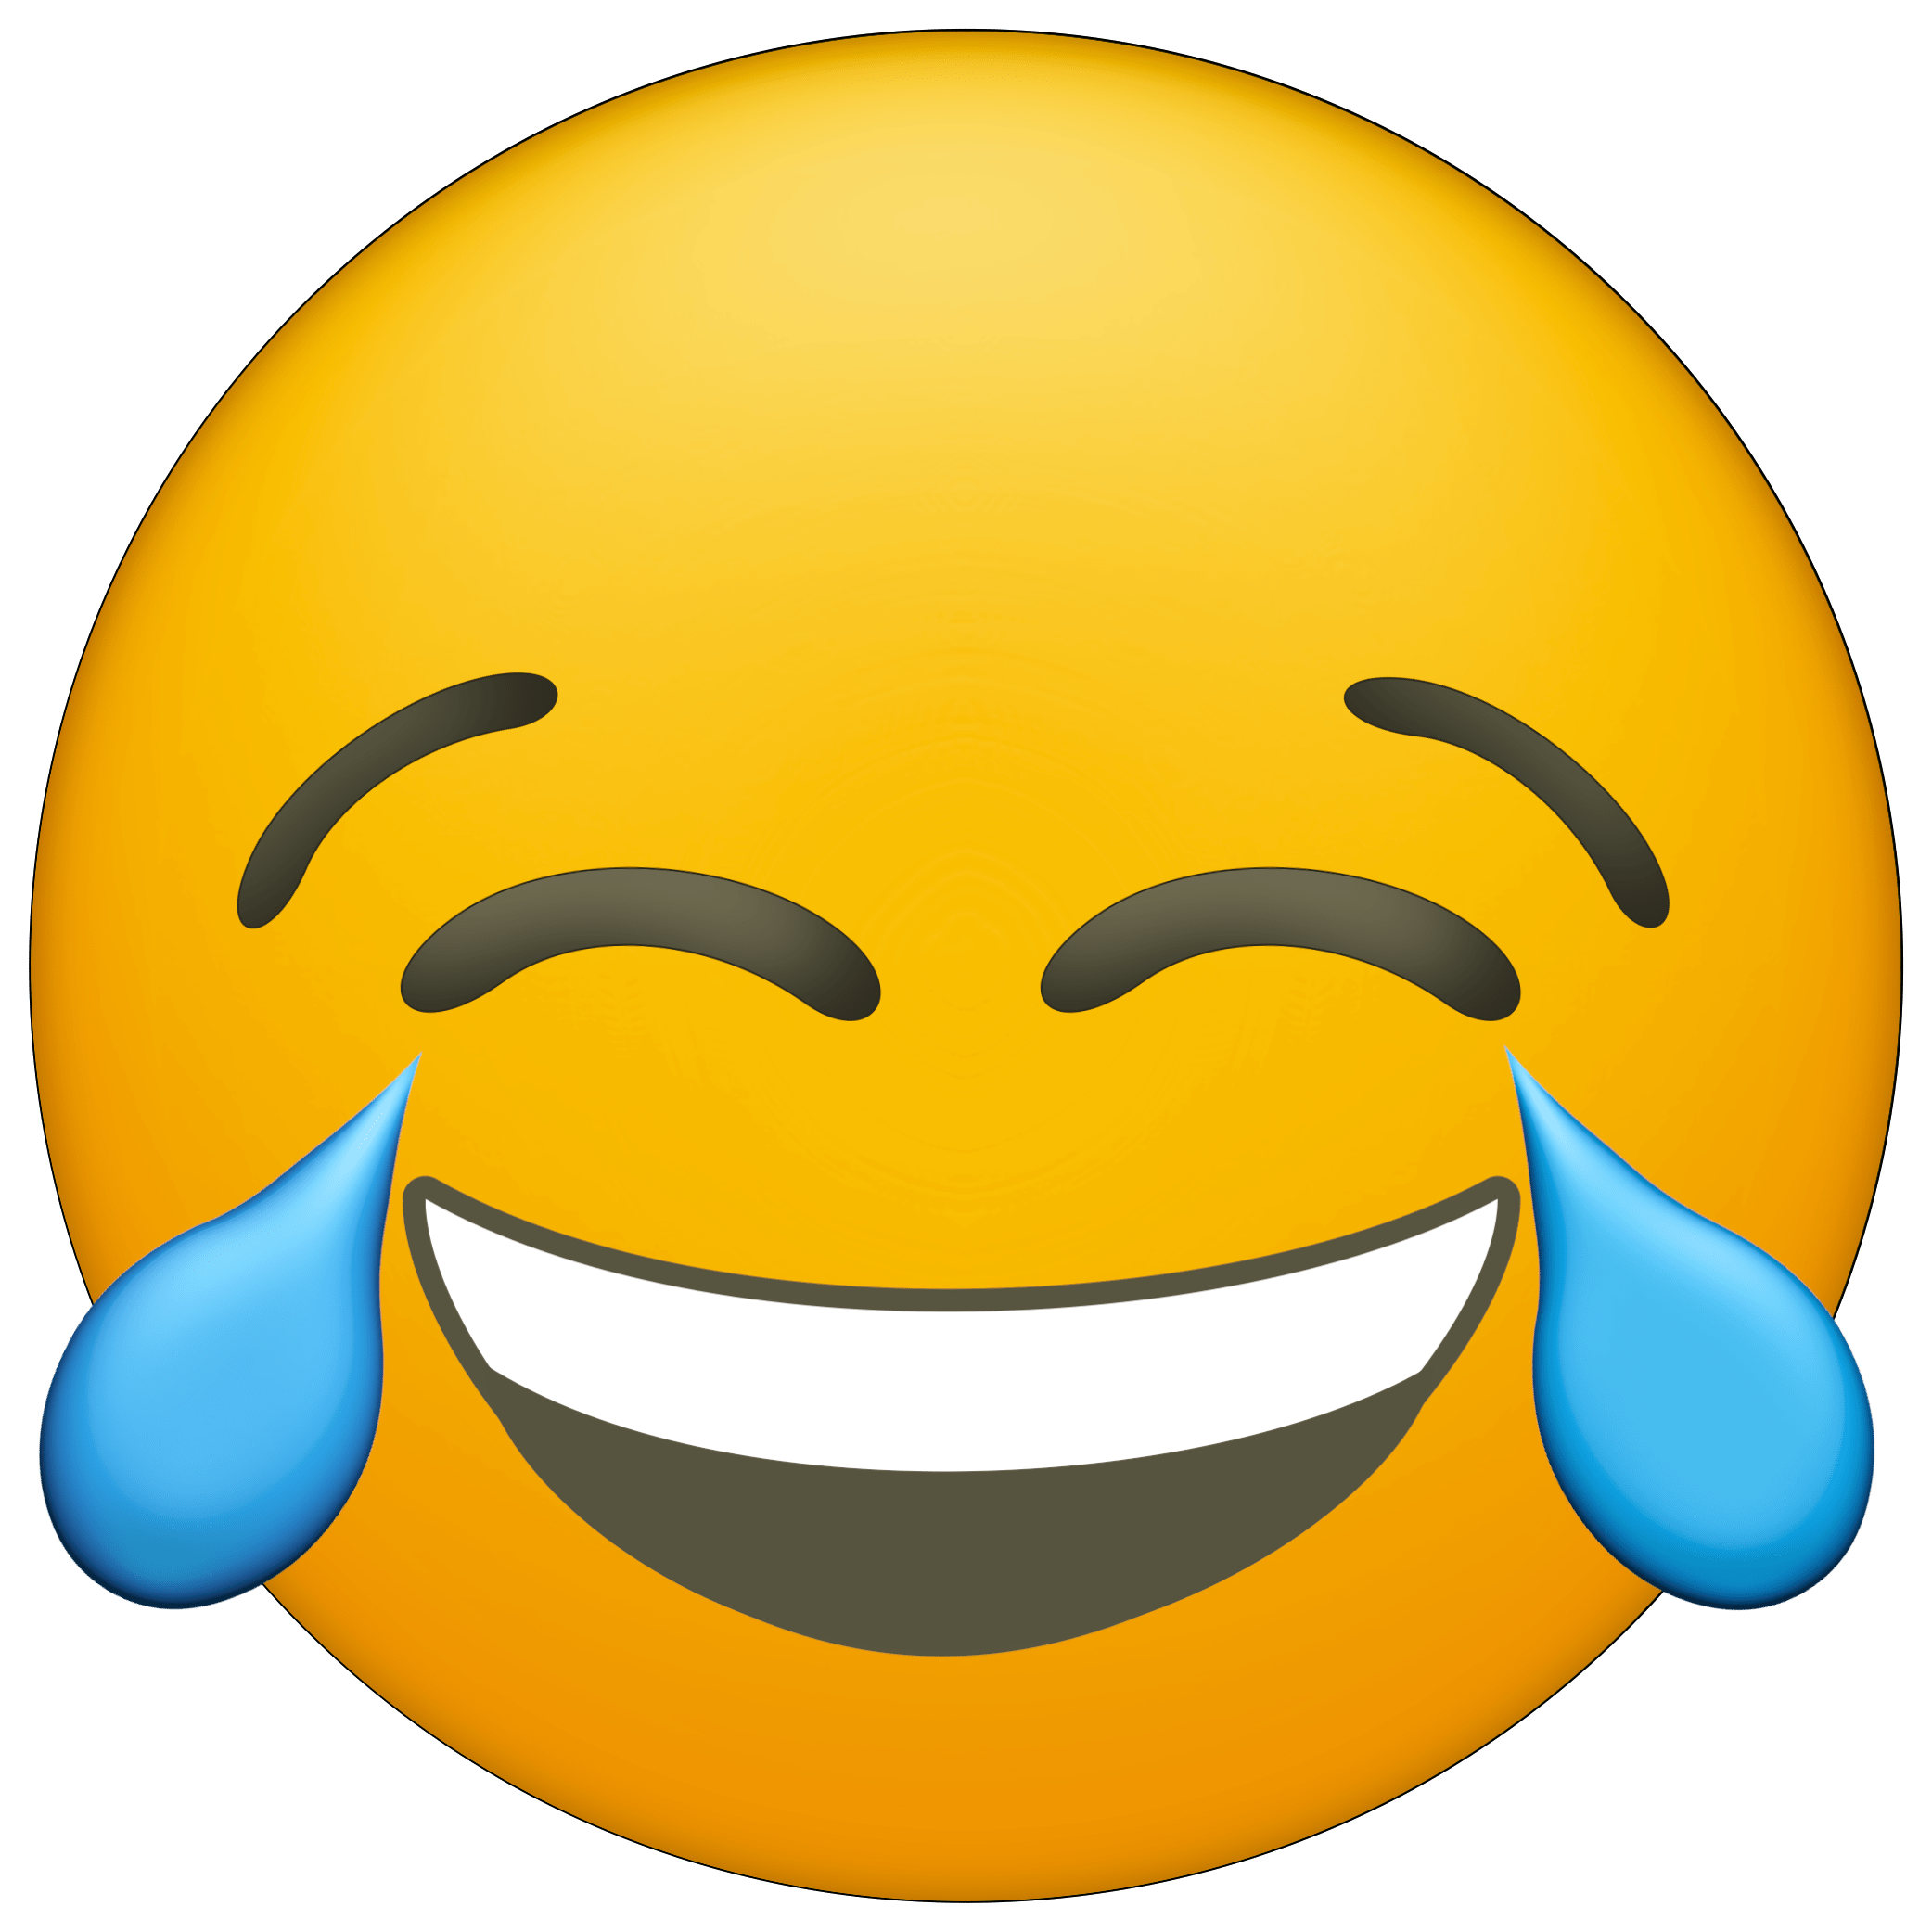 Laugh crying emoji png. Laughing emojis pinterest cryinglaughingpng